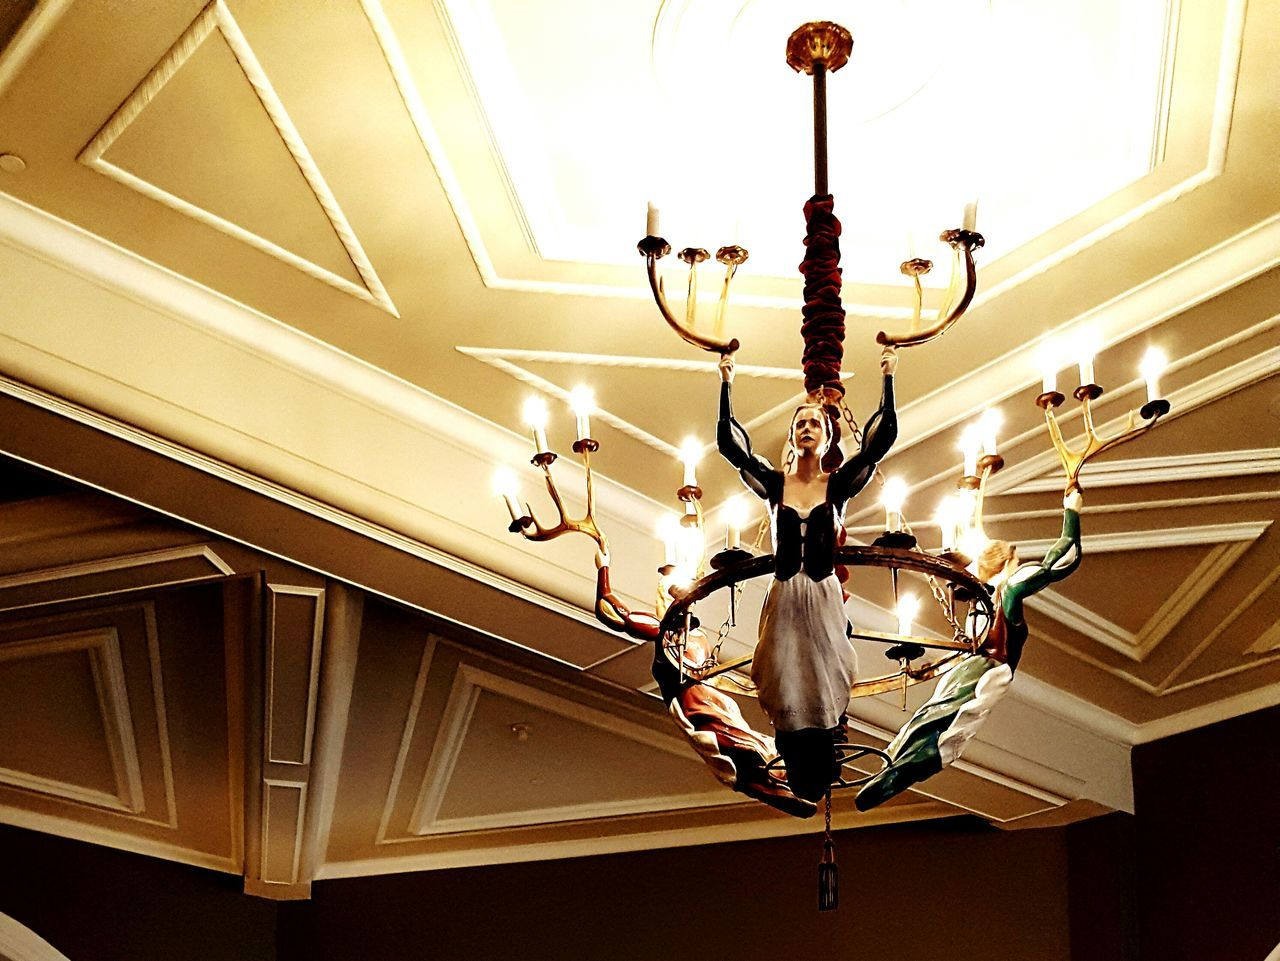 ceiling, hanging, indoors, lighting equipment, low angle view, illuminated, no people, ceiling fan, light bulb, architecture